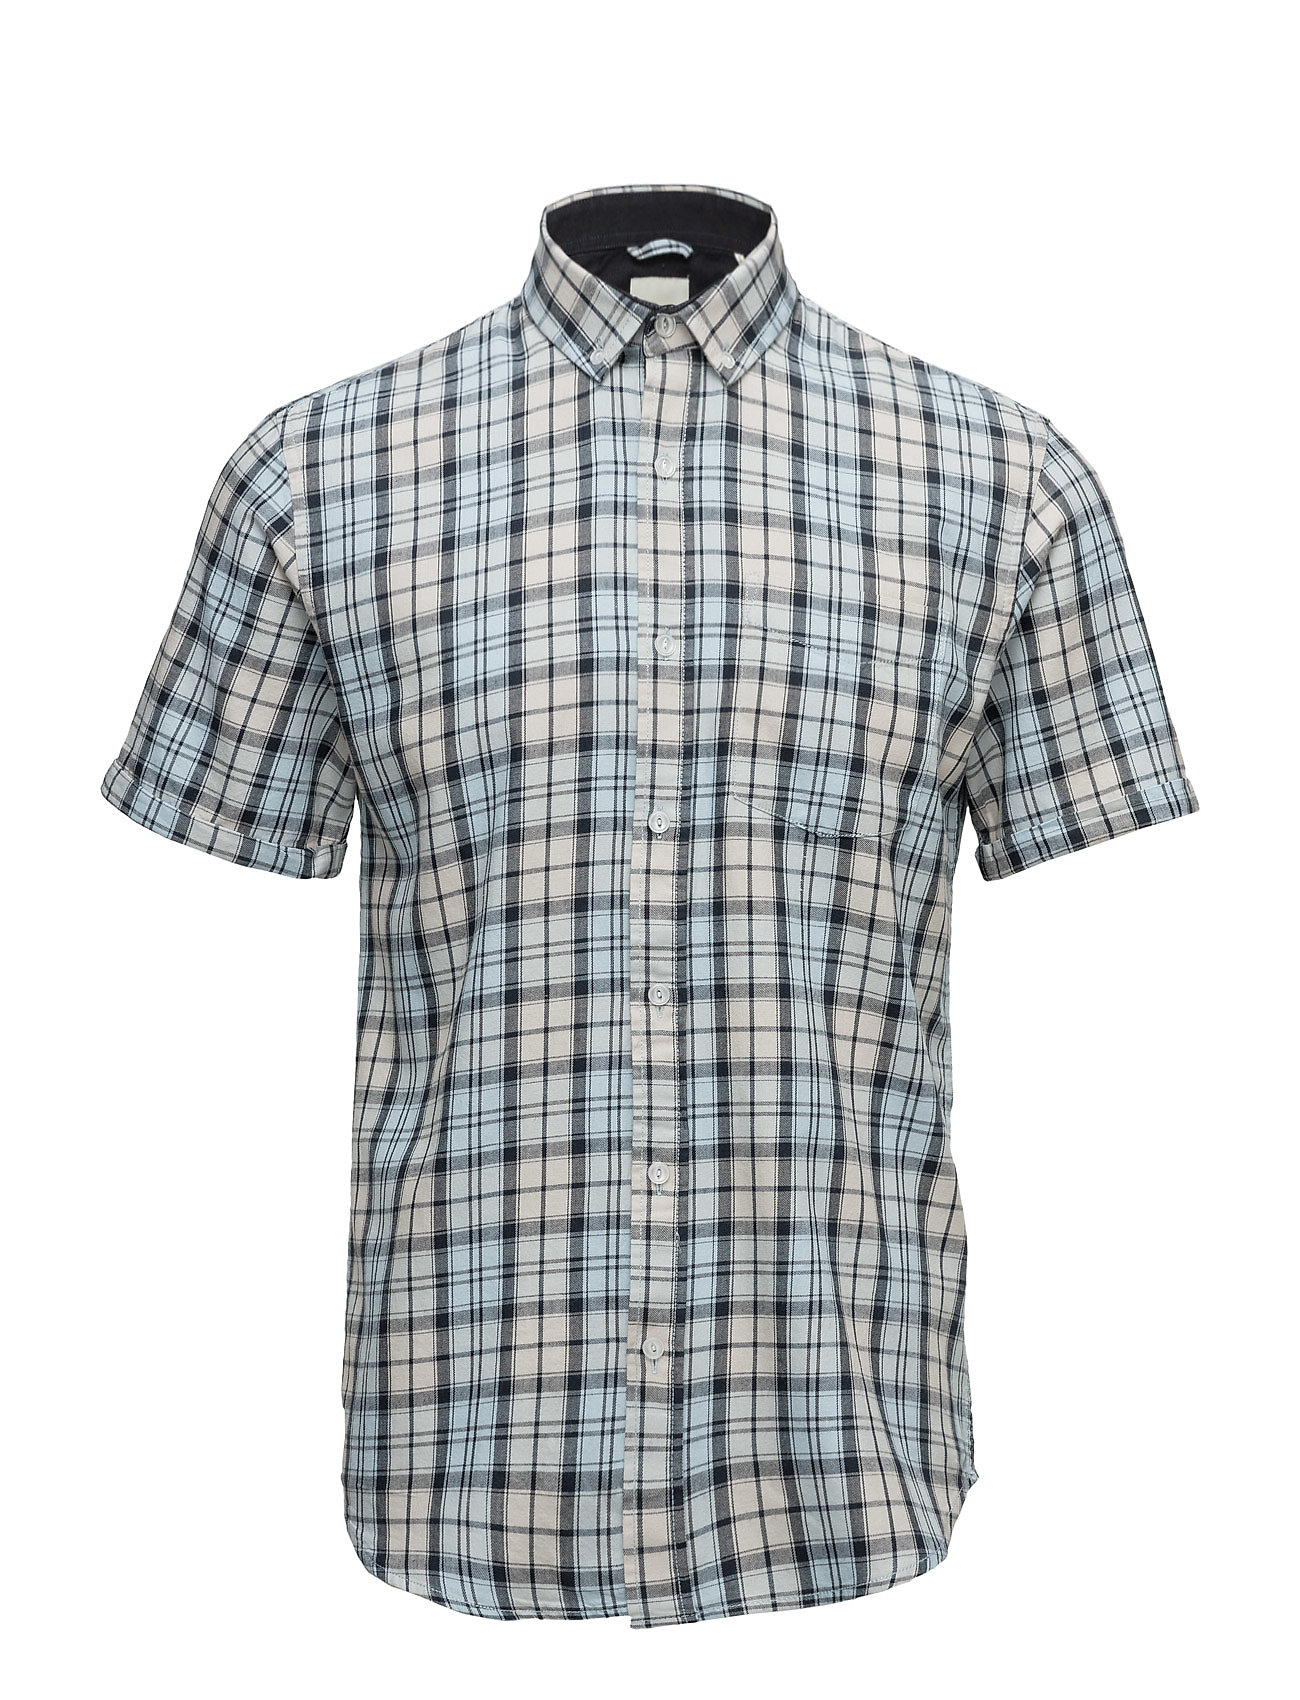 Shine Original CheckedcottonshirtS/S